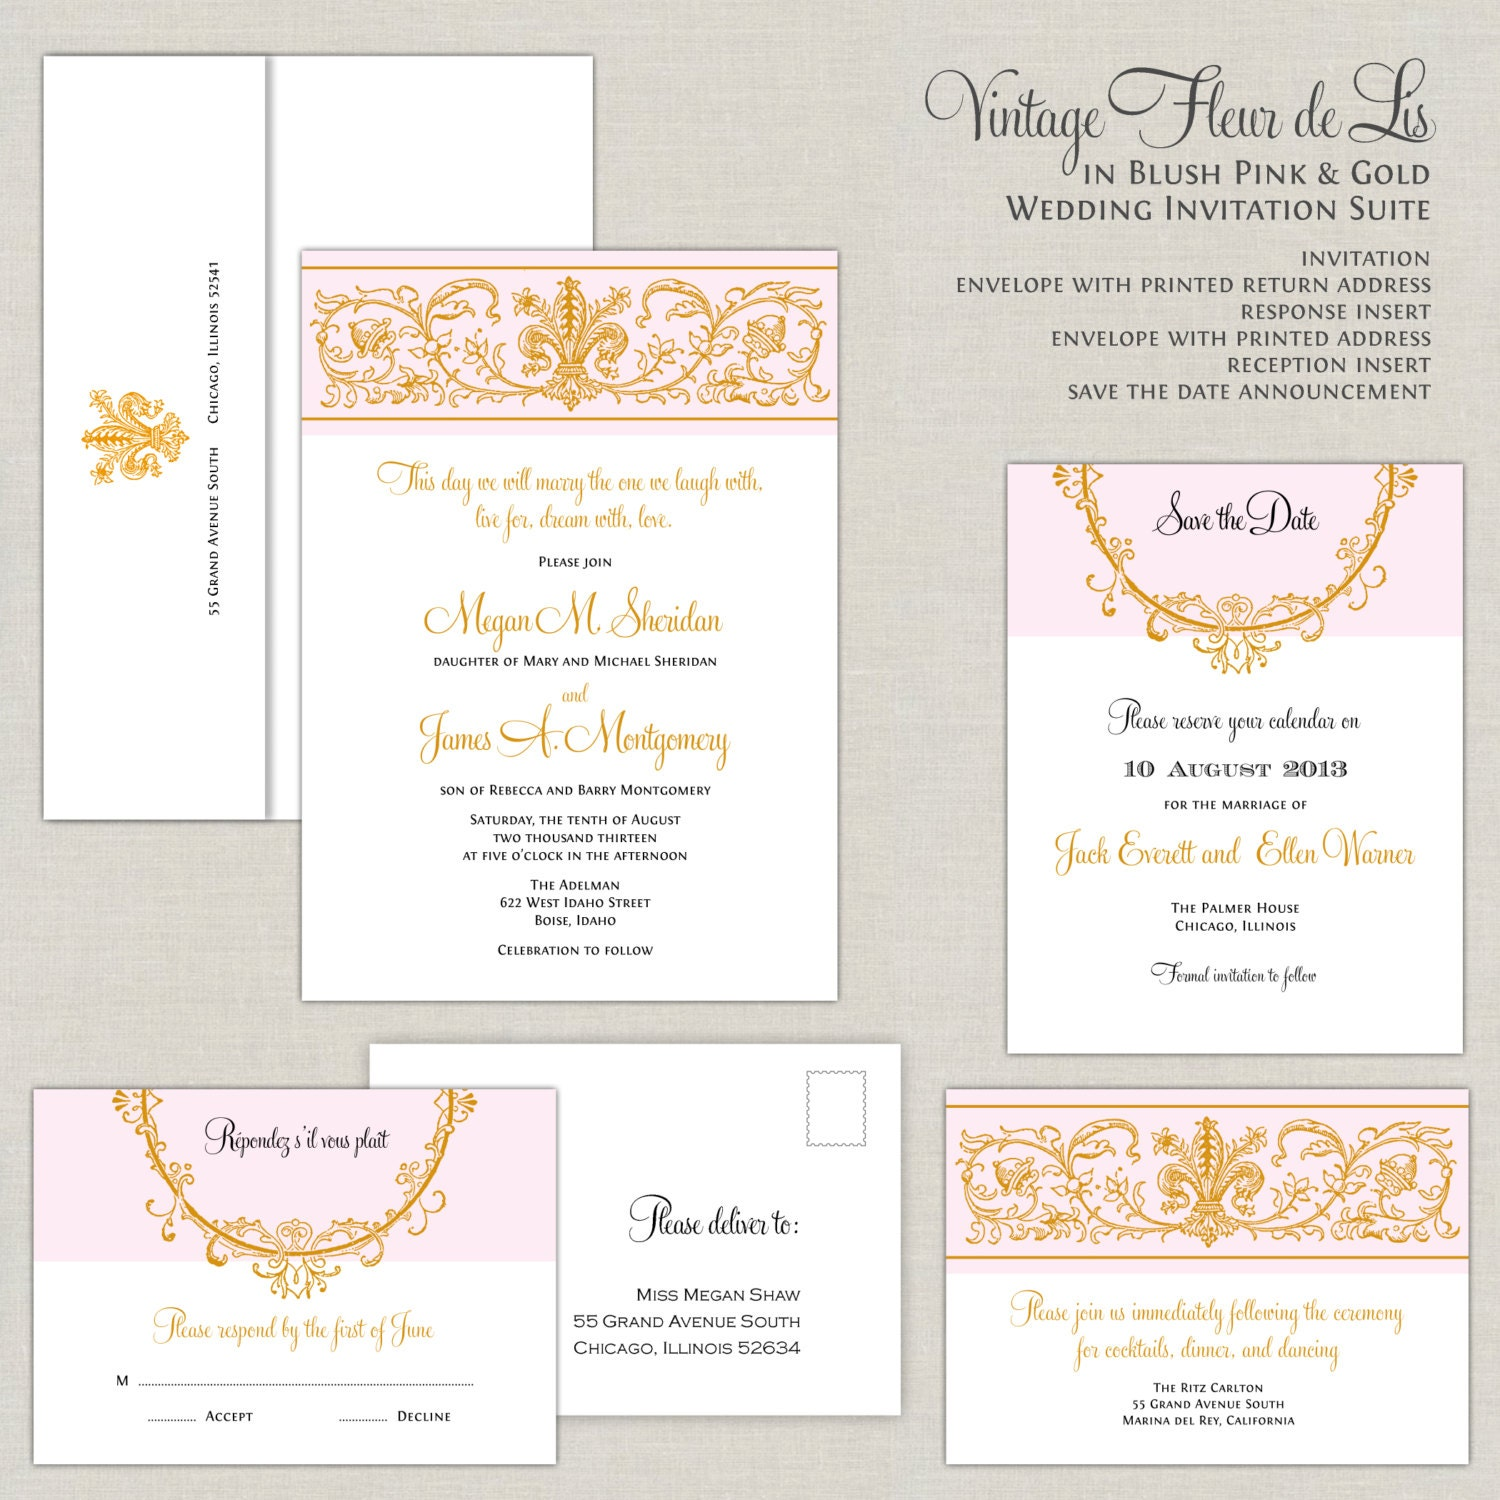 Fleur De Lis Wedding Invitations is one of our best ideas you might choose for invitation design